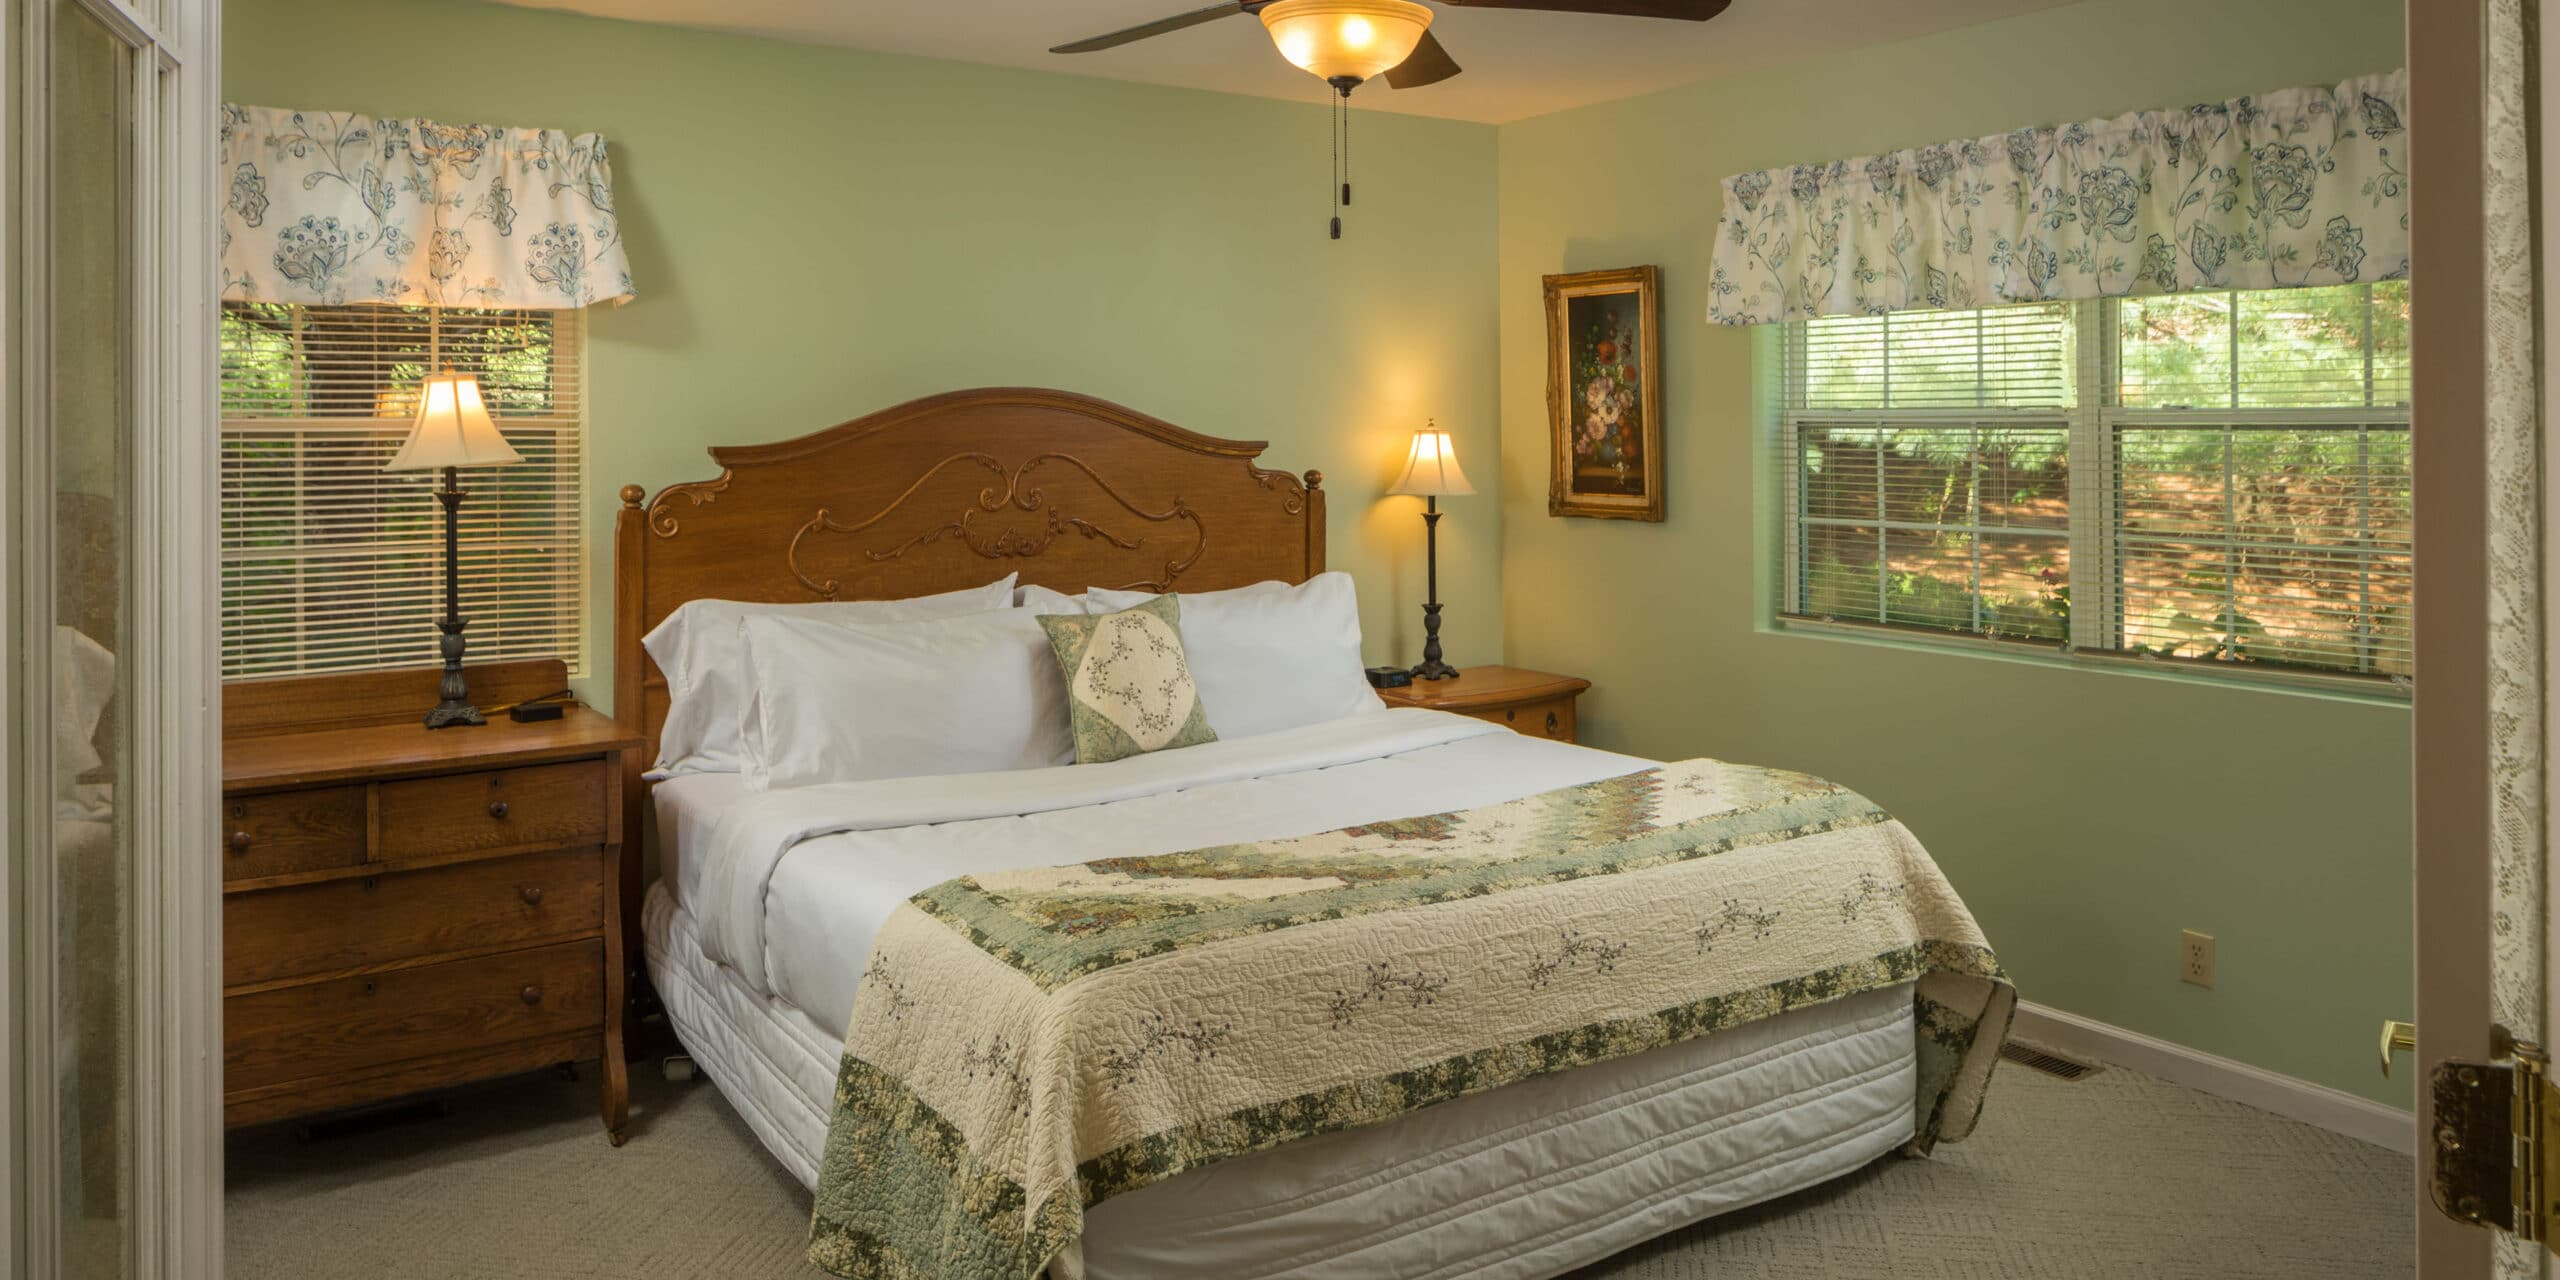 light green room with large white bed with dresser and nightstand